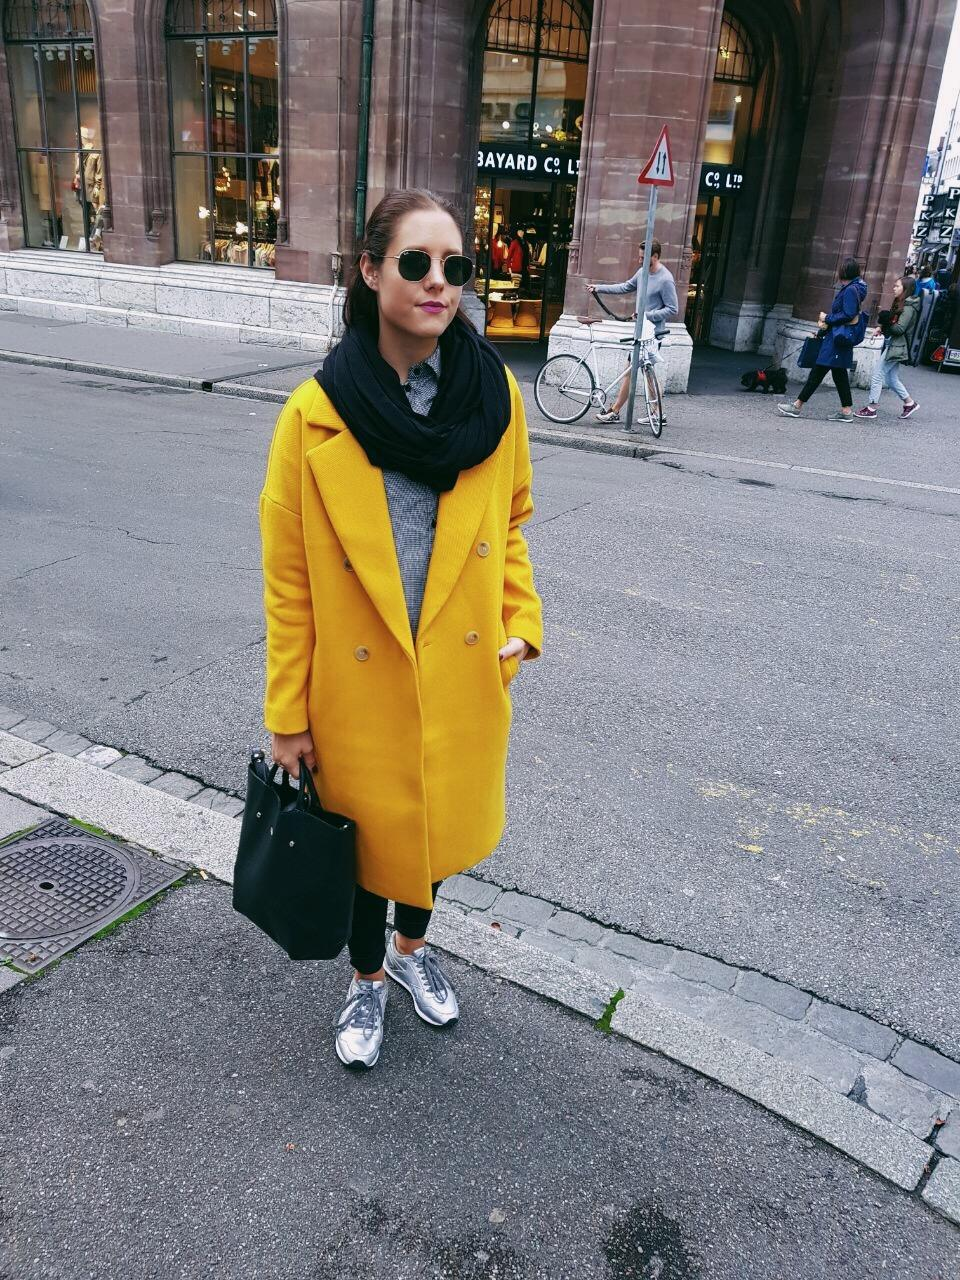 Liebe auf den ersten blick  coloryourday colors fashion fashiondaily style streetstyle yellow urban urbanstyle  210c3247 ec98 4aeb 8f01 09898d7cadaa